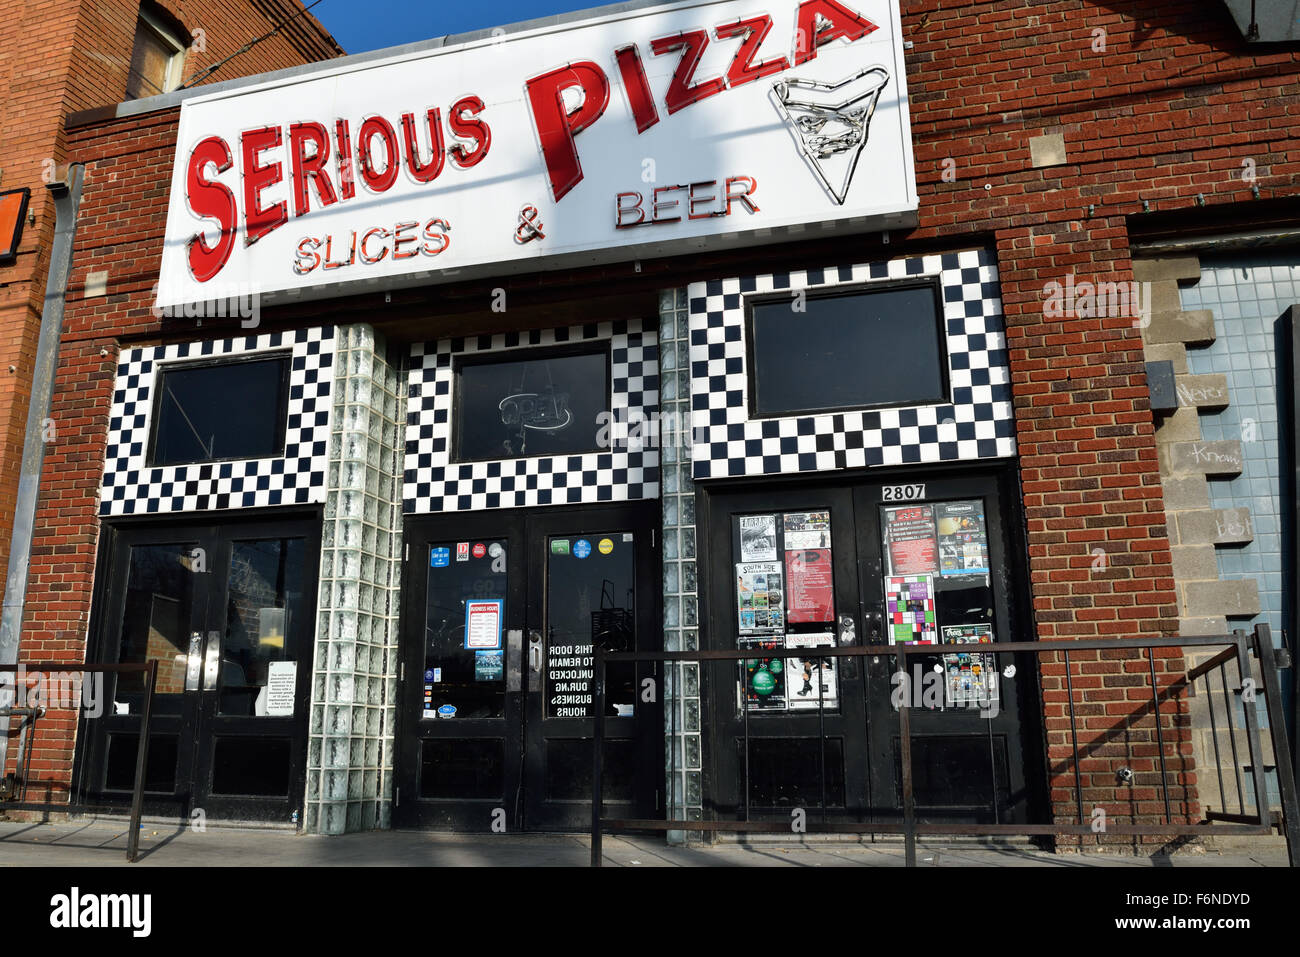 Image result for serious pizza